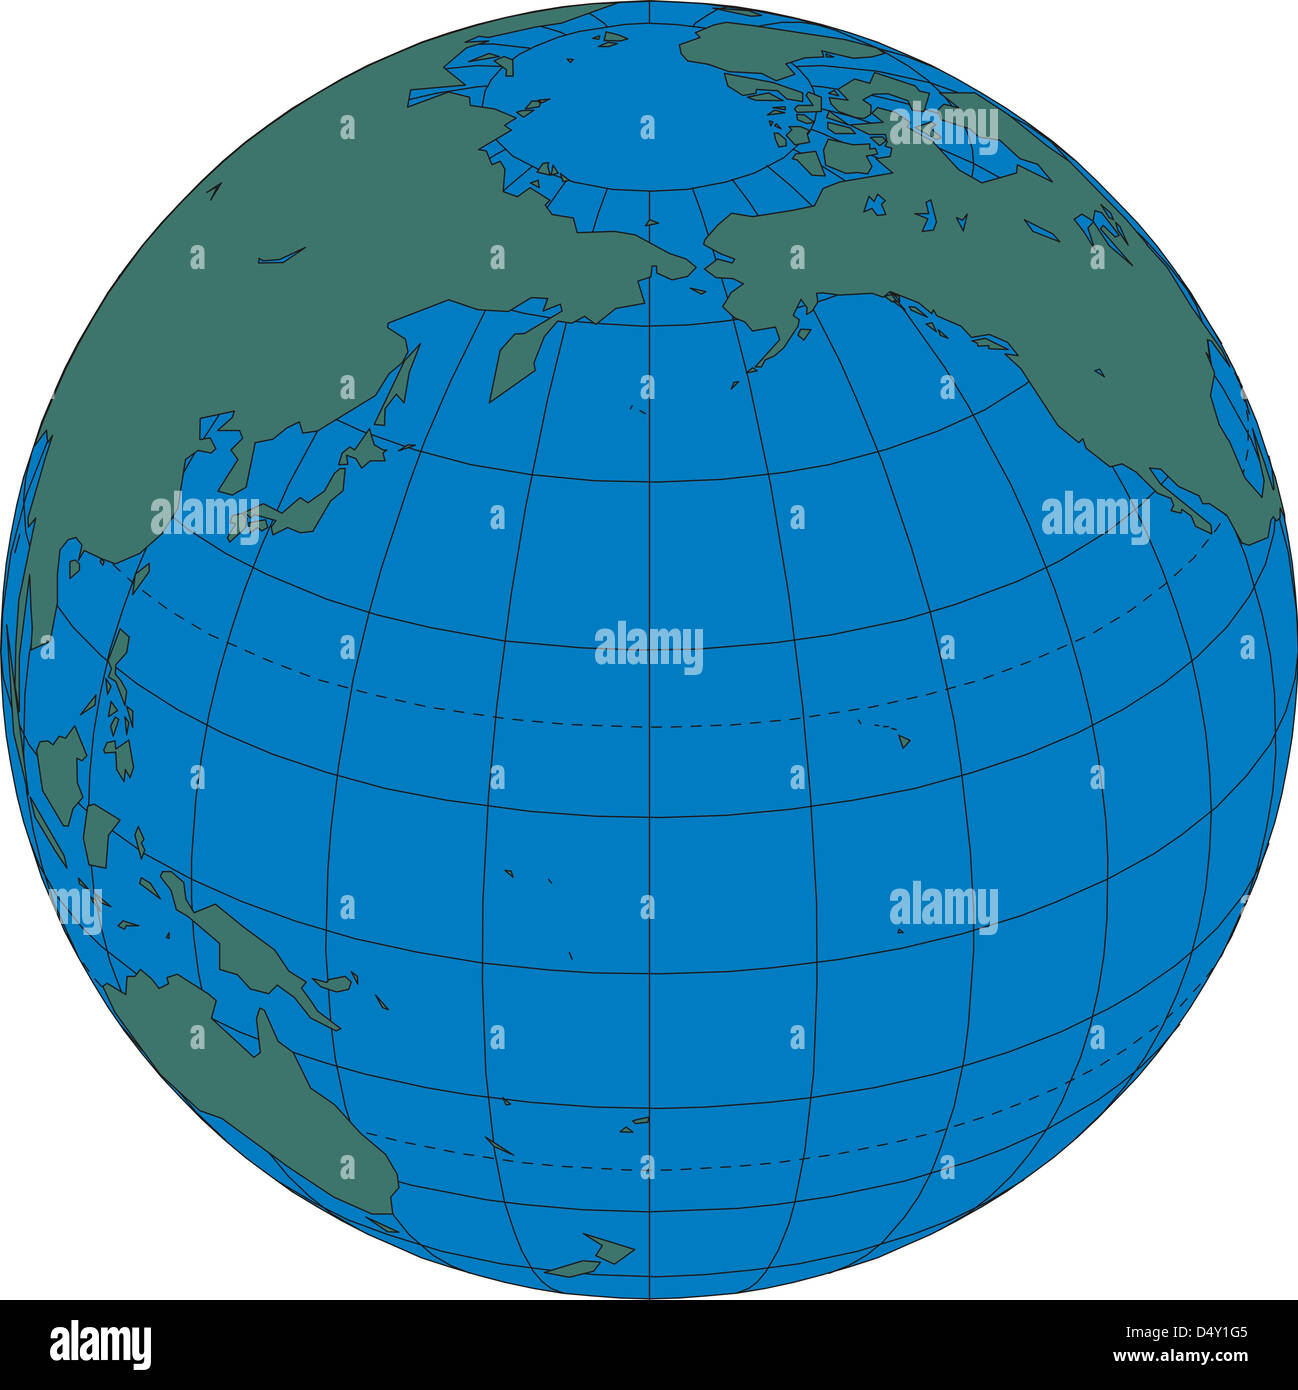 World map globe north pacific ocean stock photo 54683669 alamy world map globe north pacific ocean gumiabroncs Image collections